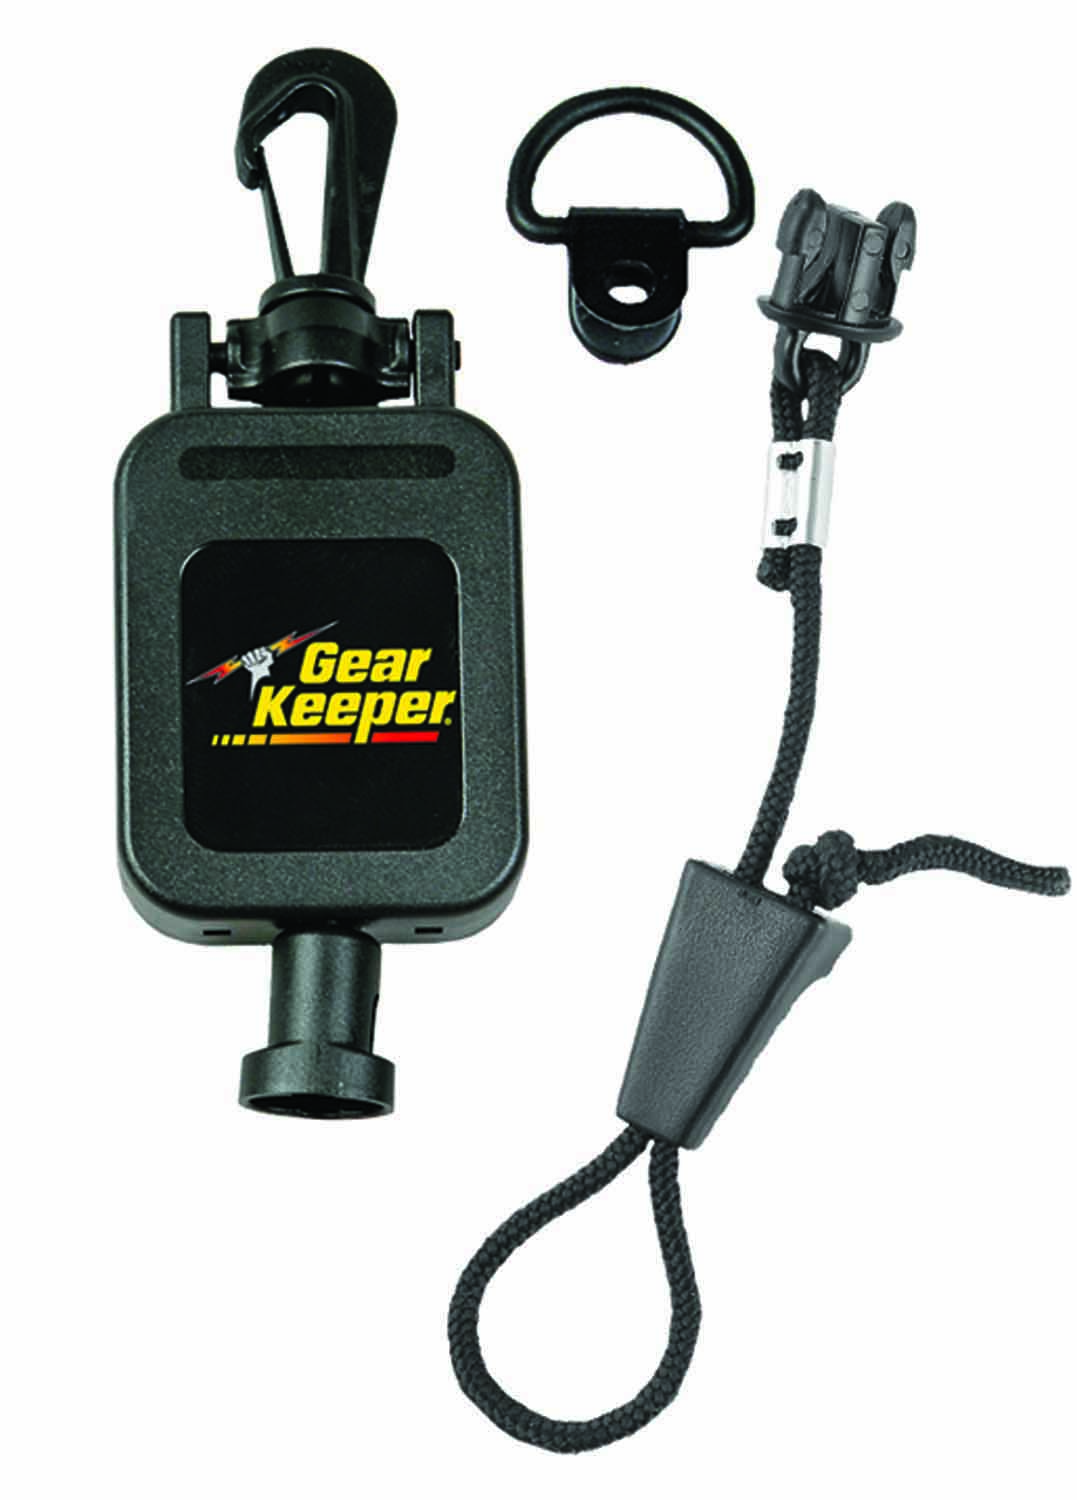 MH9 - Hammerhead Gear Keeper Retractable Cb Microphone Keeper